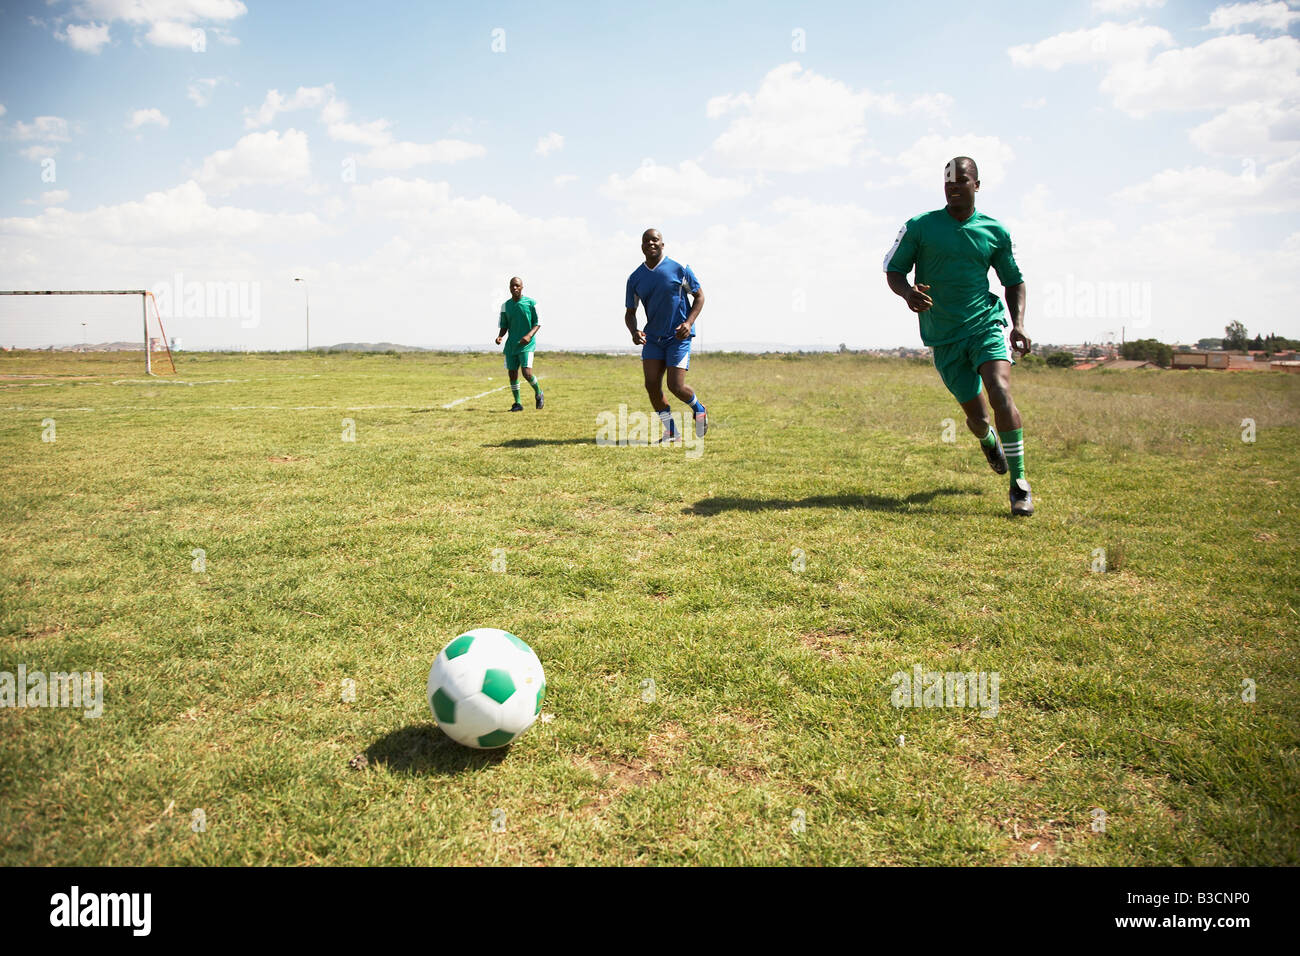 13MA-005 © Monkeyapple  aFRIKA Collection  Great Stock ! Team playing soccer on green field - Stock Image